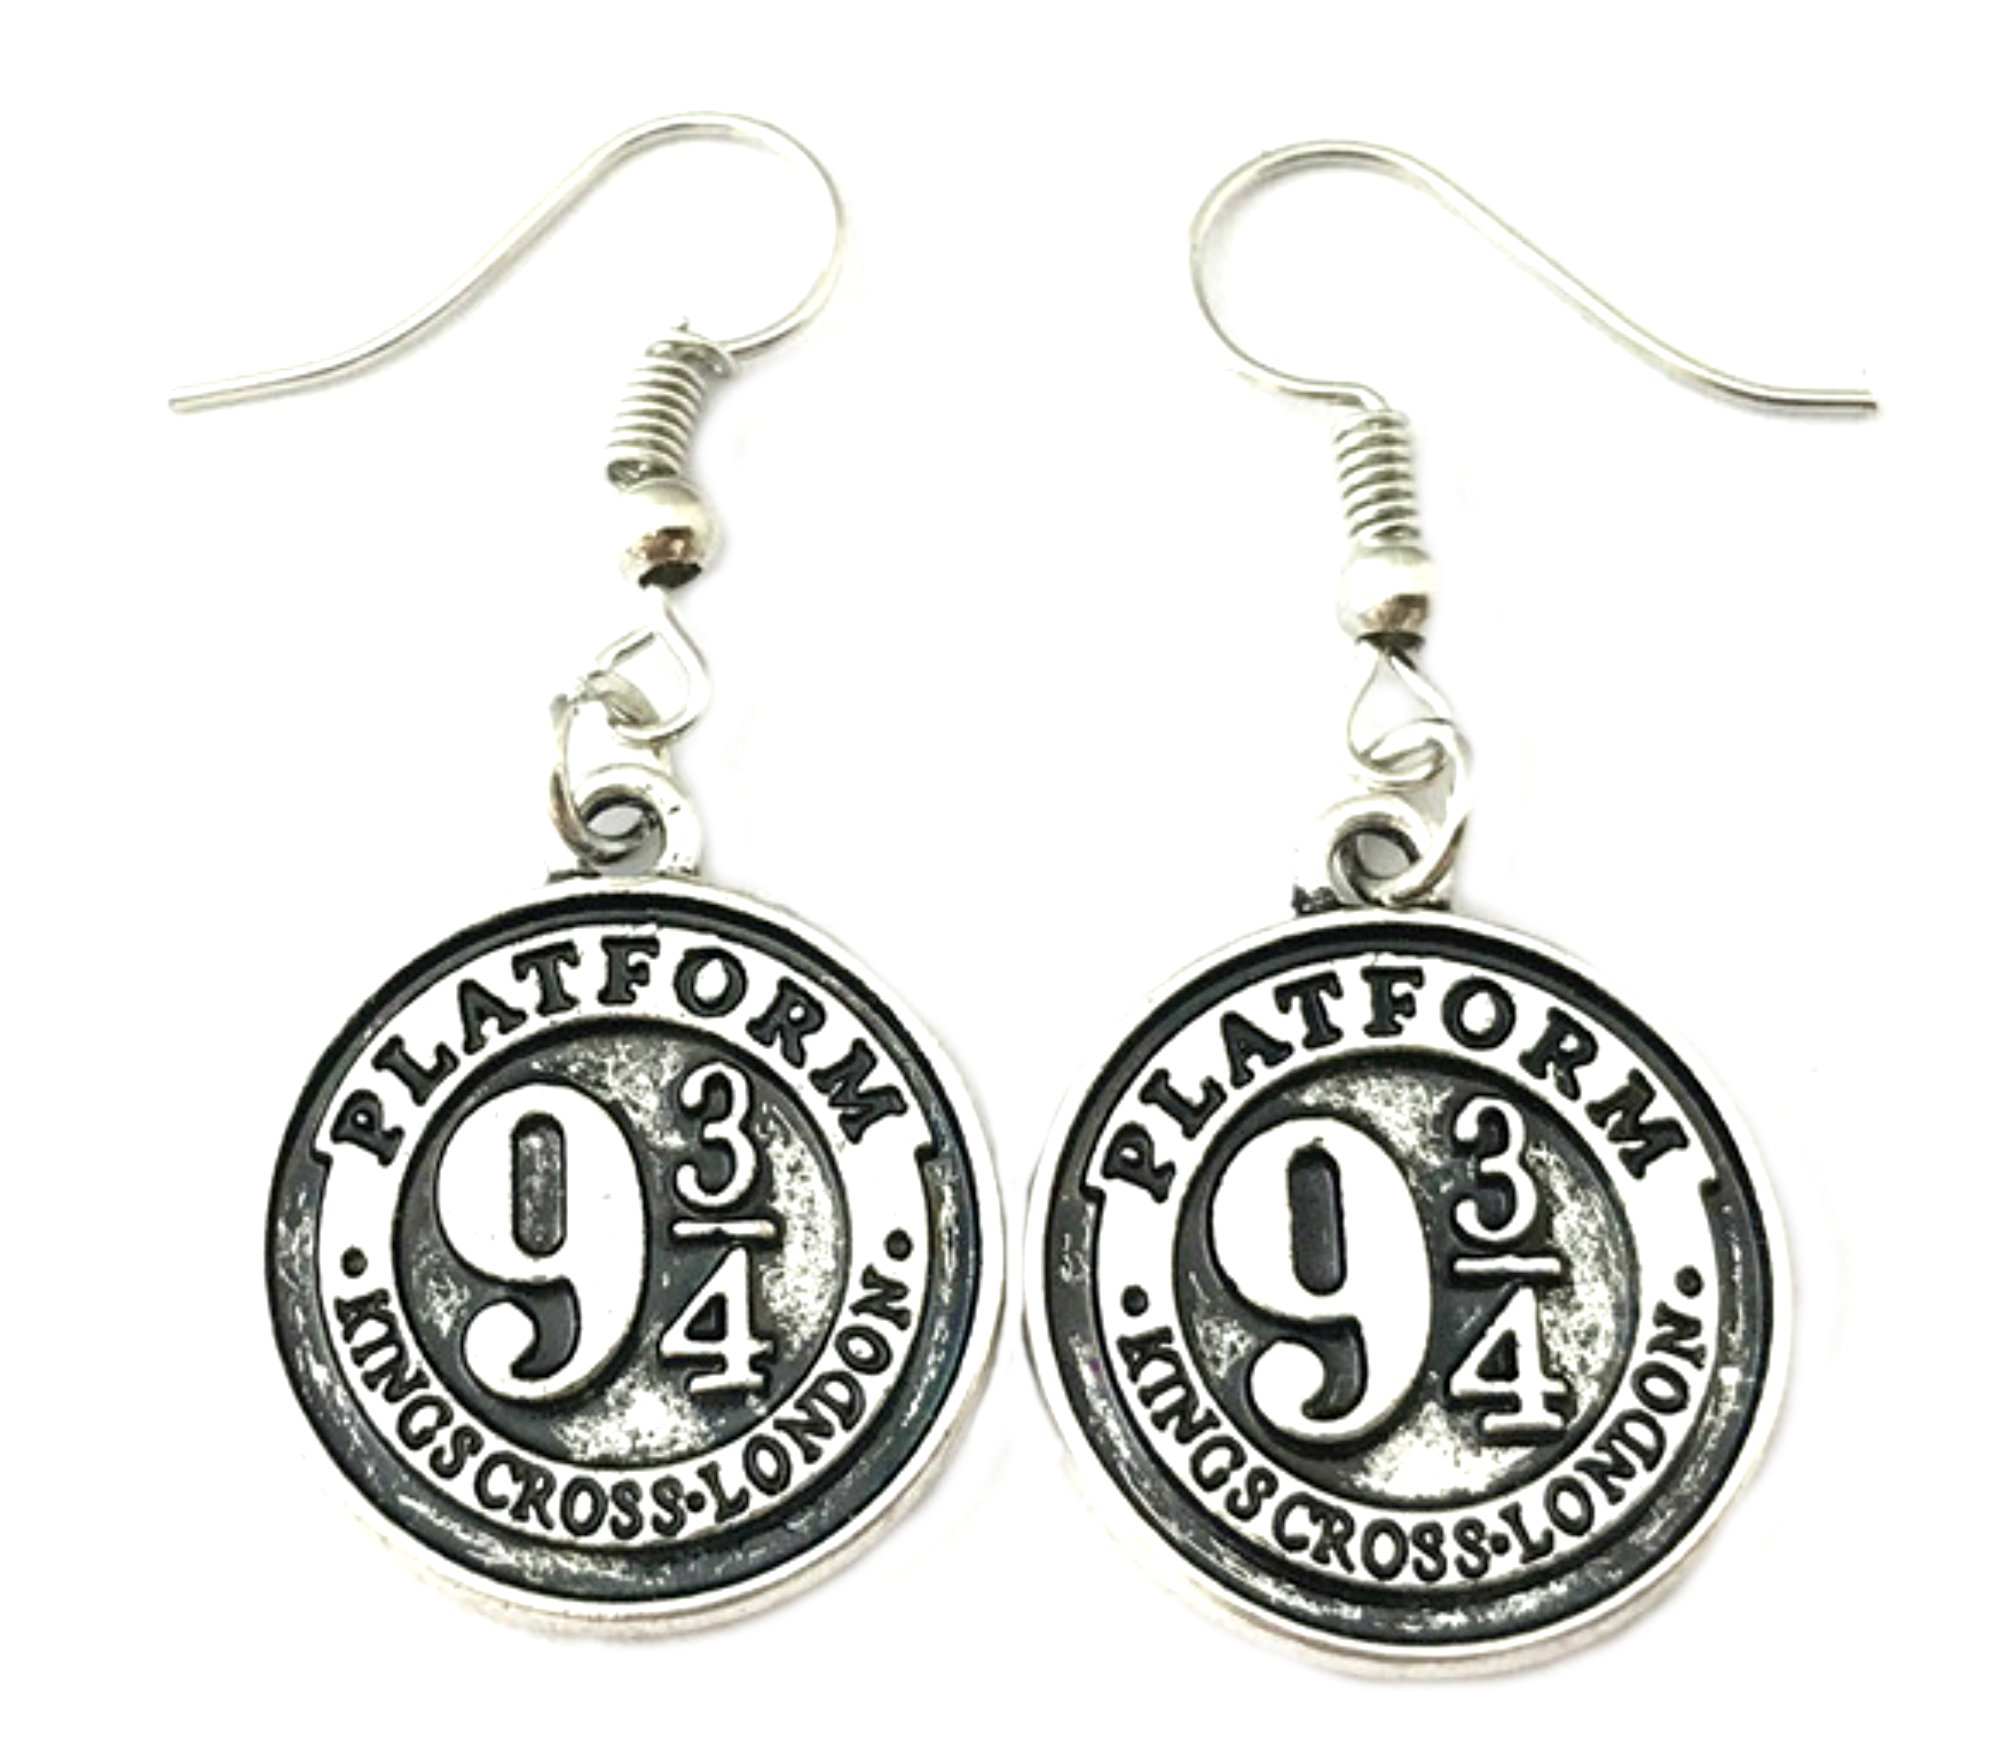 Harry Potter Premium Quality Silvertone Dangle Earrings Golden Snitch Gryffindor Slytherin Ravenclaw Hufflepuff Crest